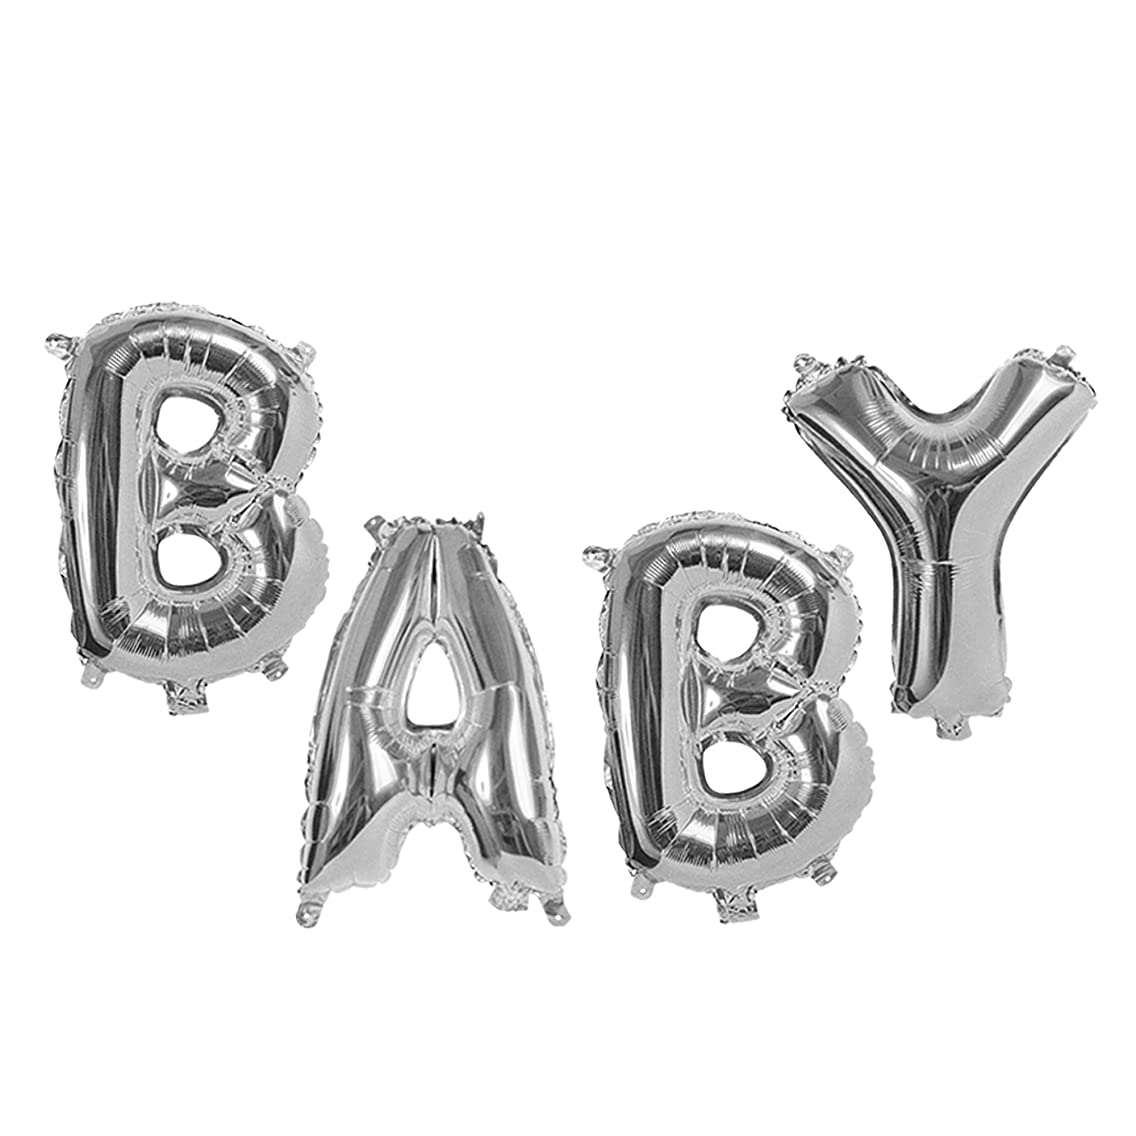 Treasures Gifted 40 Inch Baby Silver Mylar Foil Letters Balloons Helium Kit Personalized Party Supplies Gender Neutral Reveal Shower Glamorous Alphabet Aluminum Ornaments